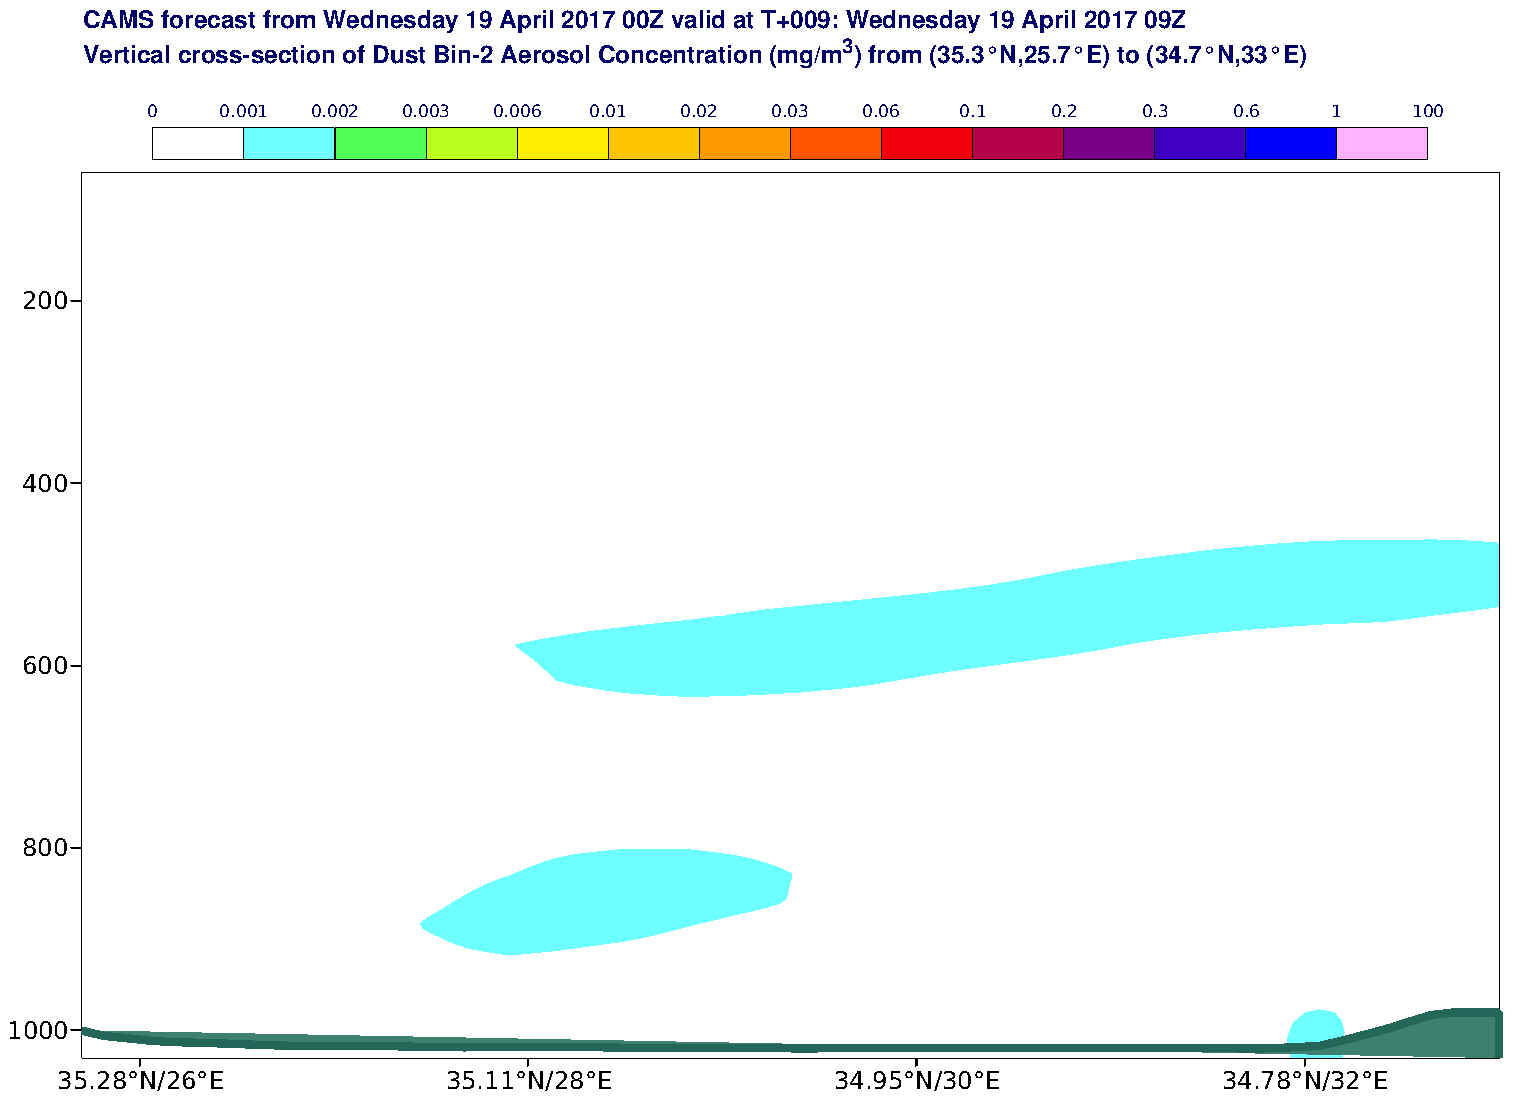 Vertical cross-section of Dust Bin-2 Aerosol Concentration (mg/m3) valid at T9 - 2017-04-19 09:00